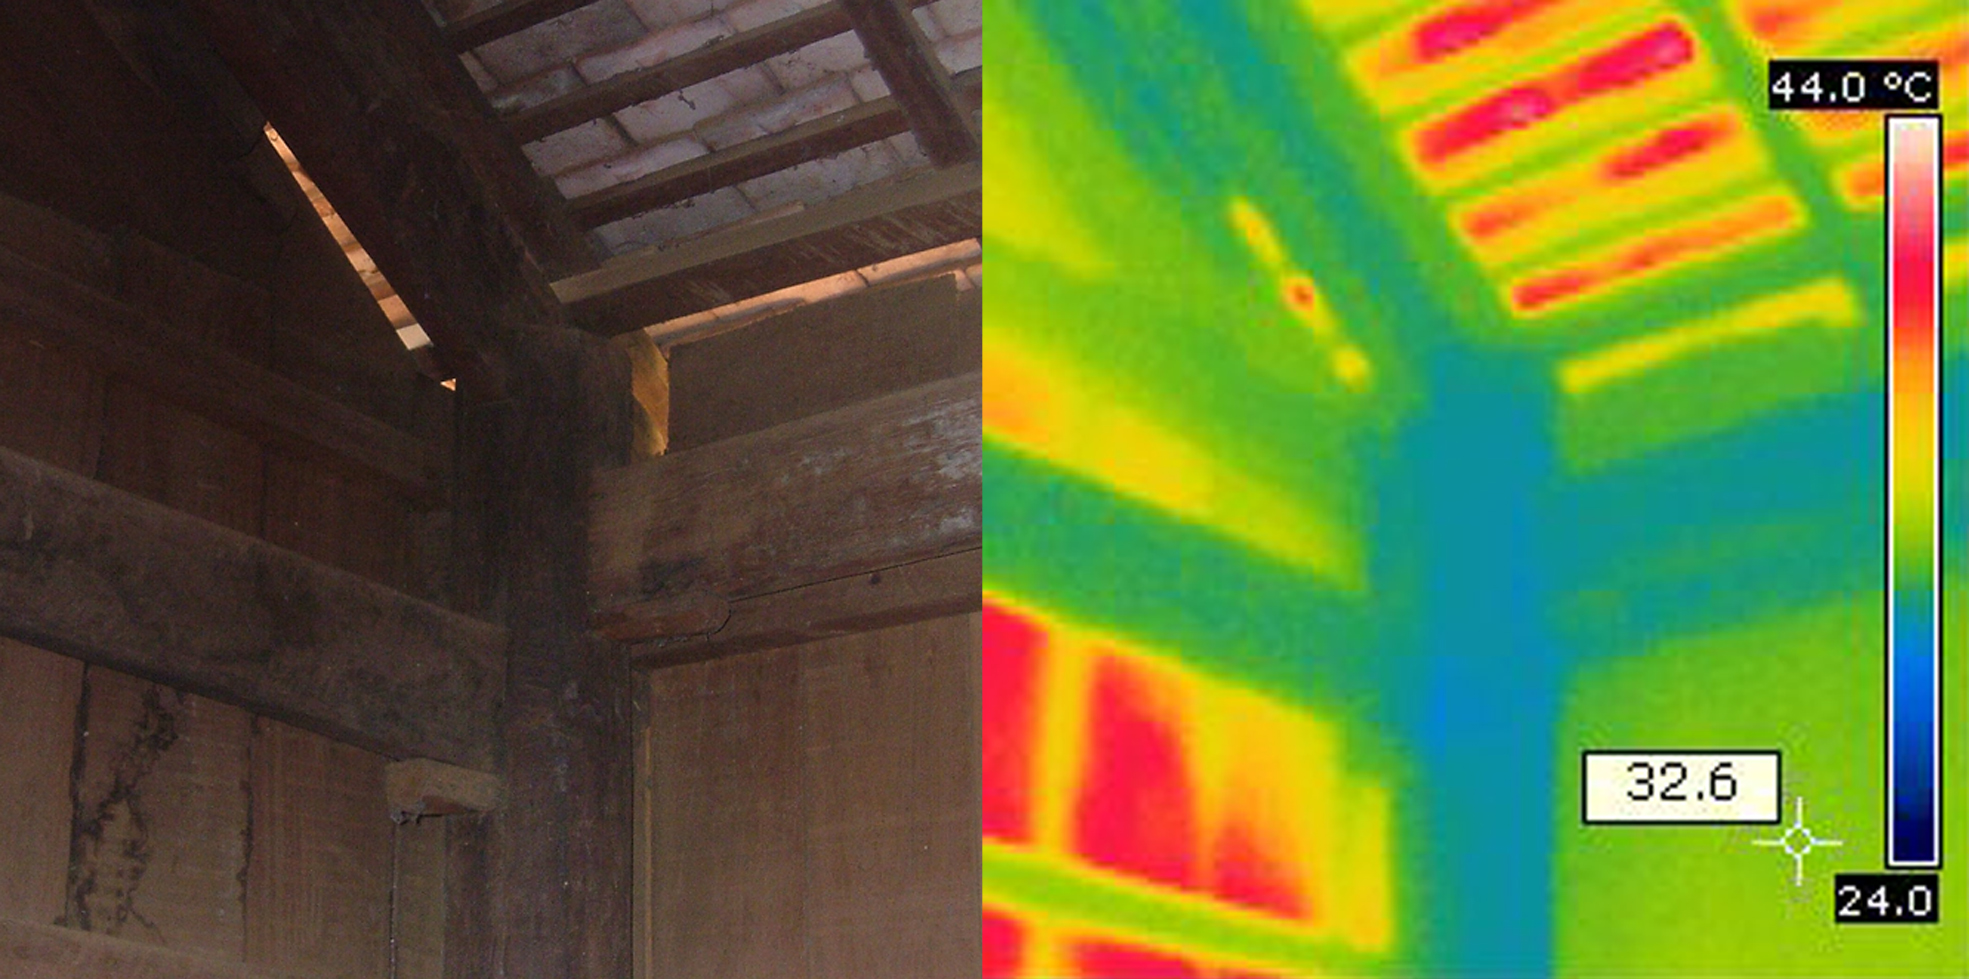 mould_inspection_leak_detection_ireland_dublin